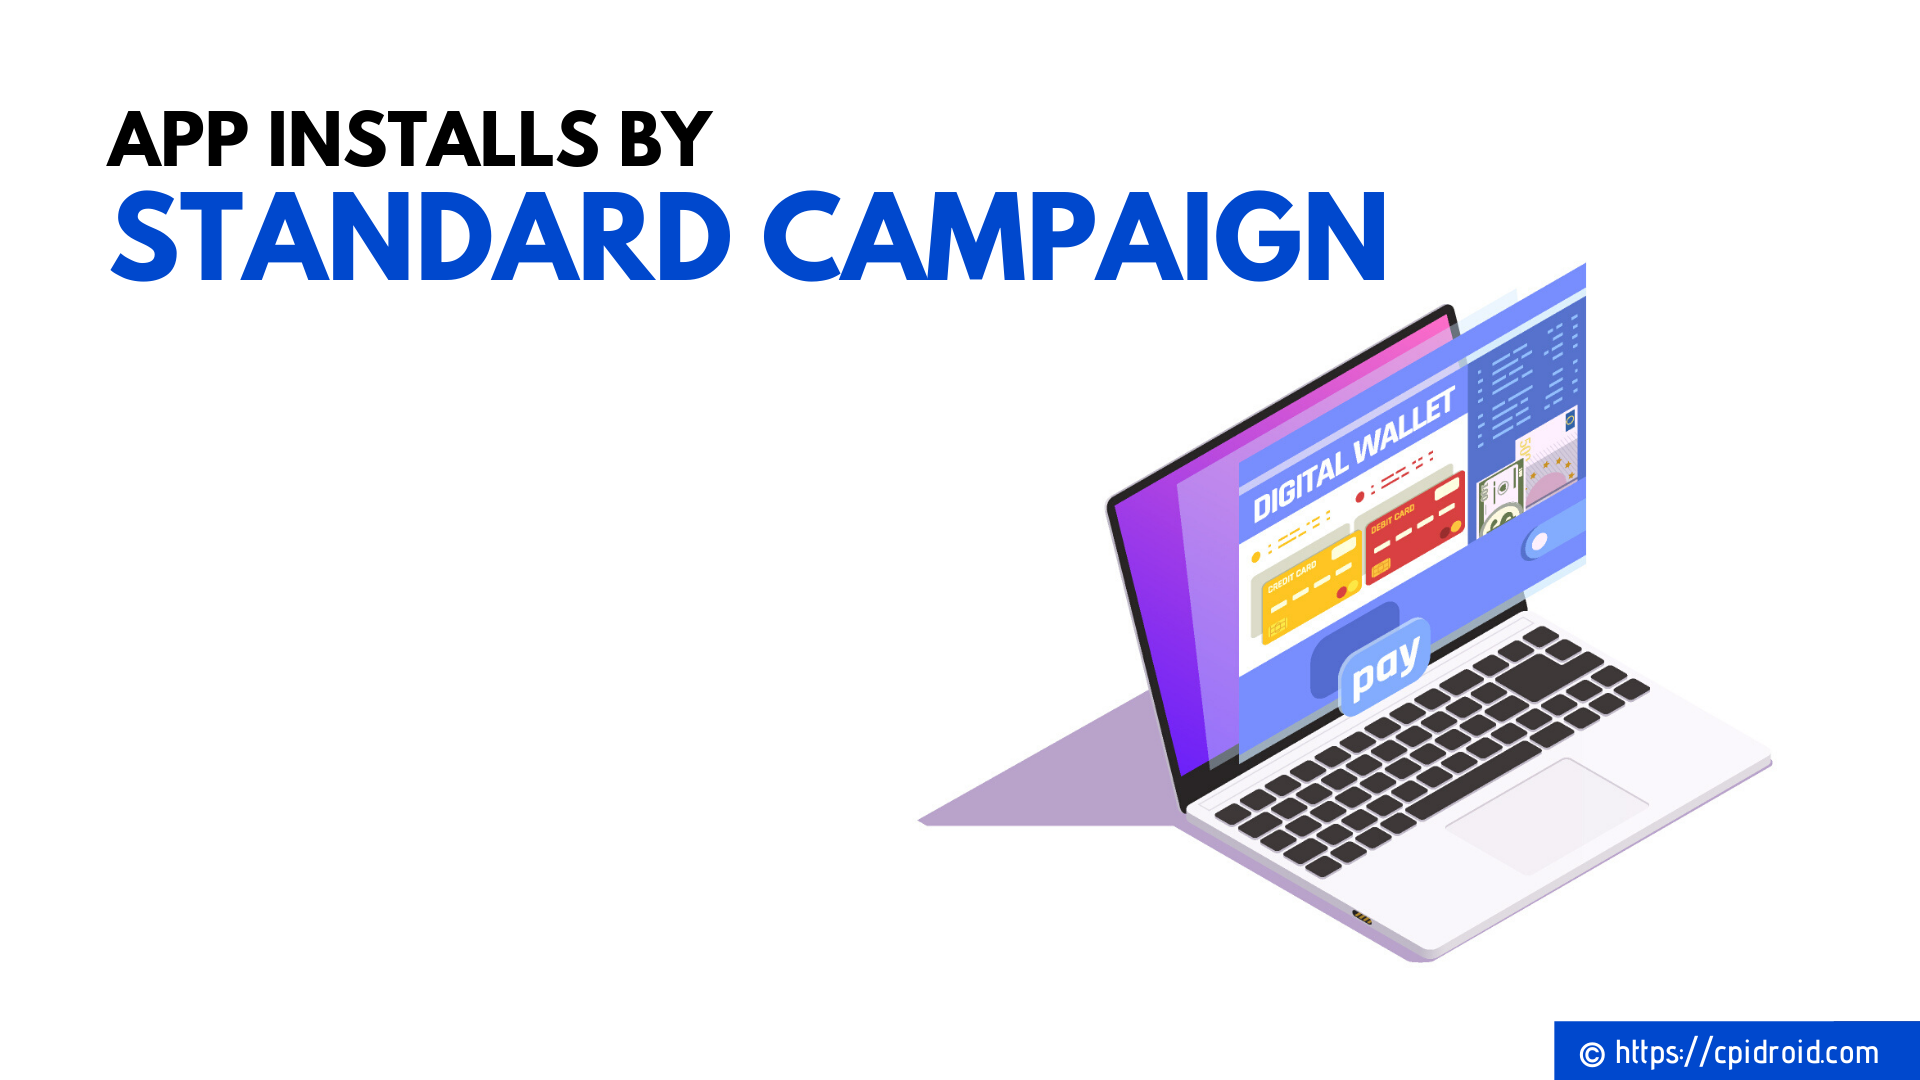 App Installs by Standard Campaign